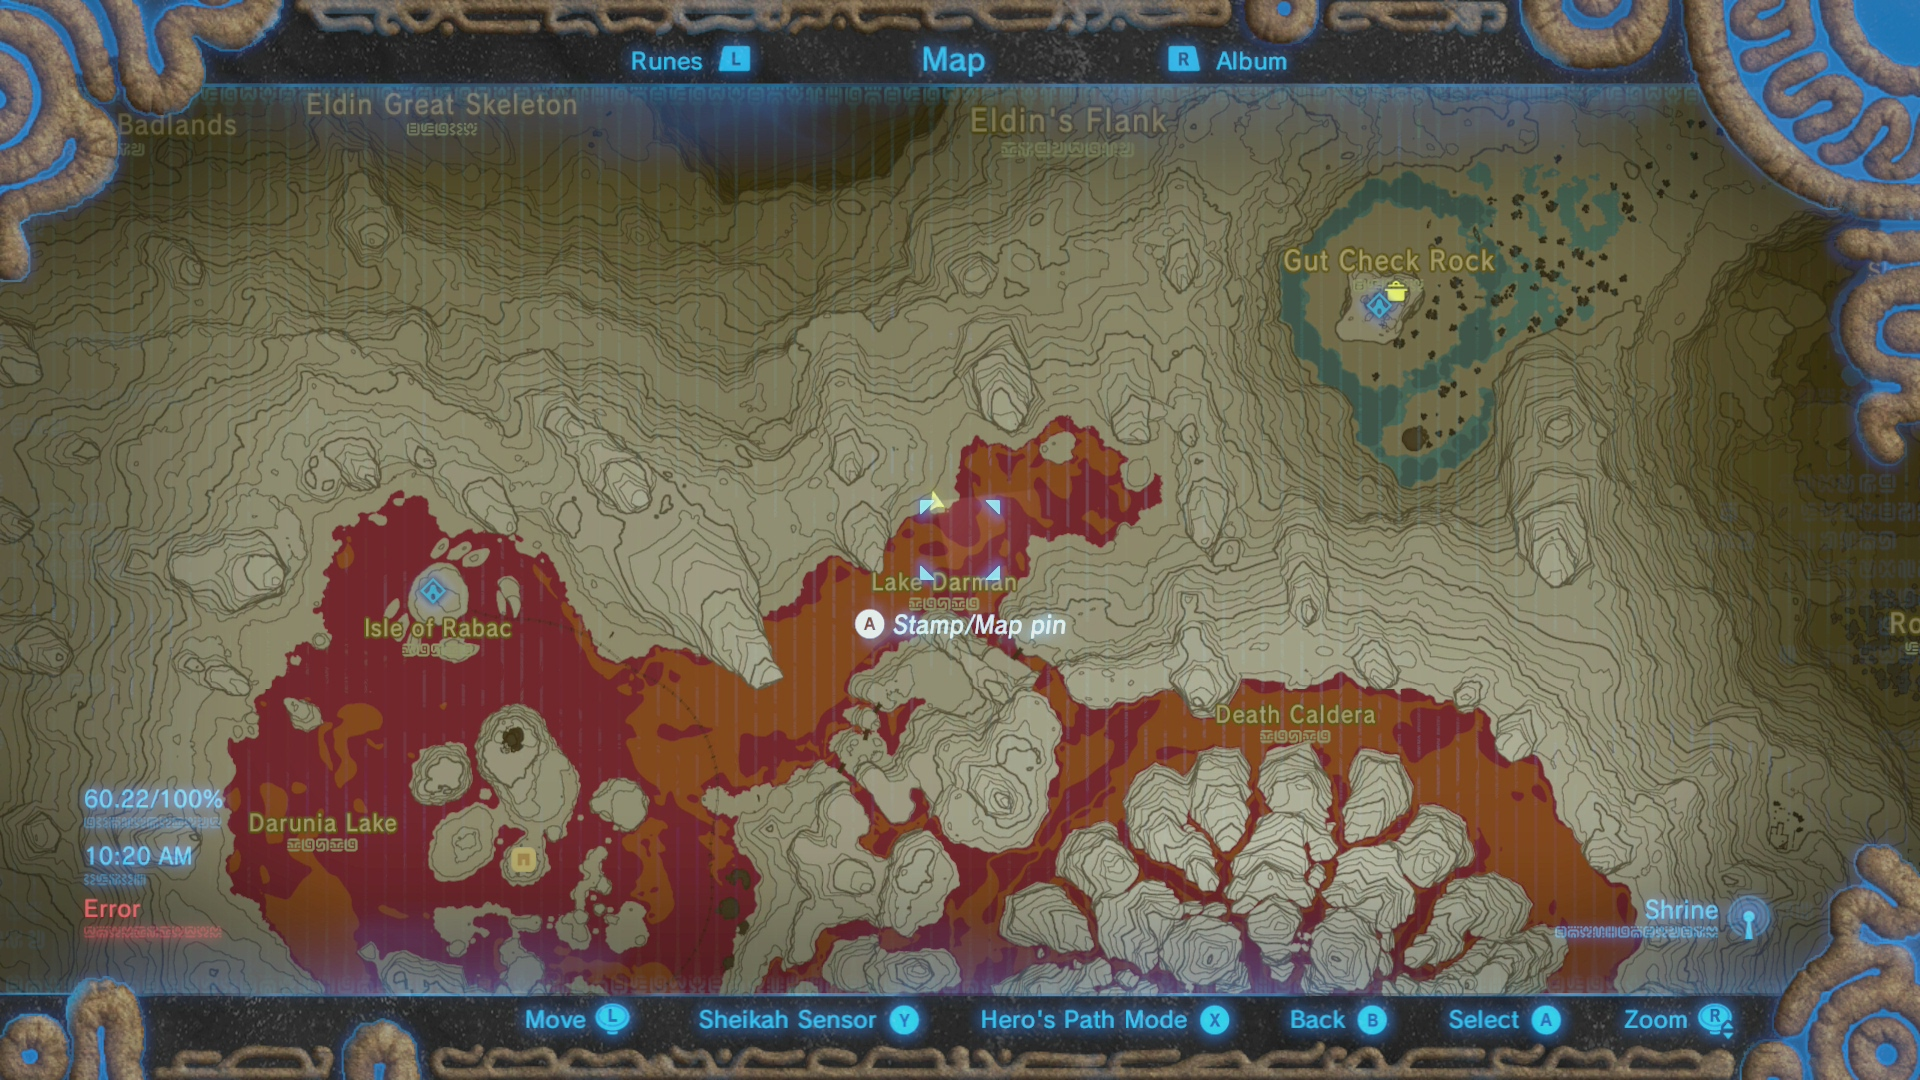 Ex Ancient Horse Rumors Walkthrough Dlc Pack 2 The Legend Of Zelda Breath Of The Wild Wikigameguides